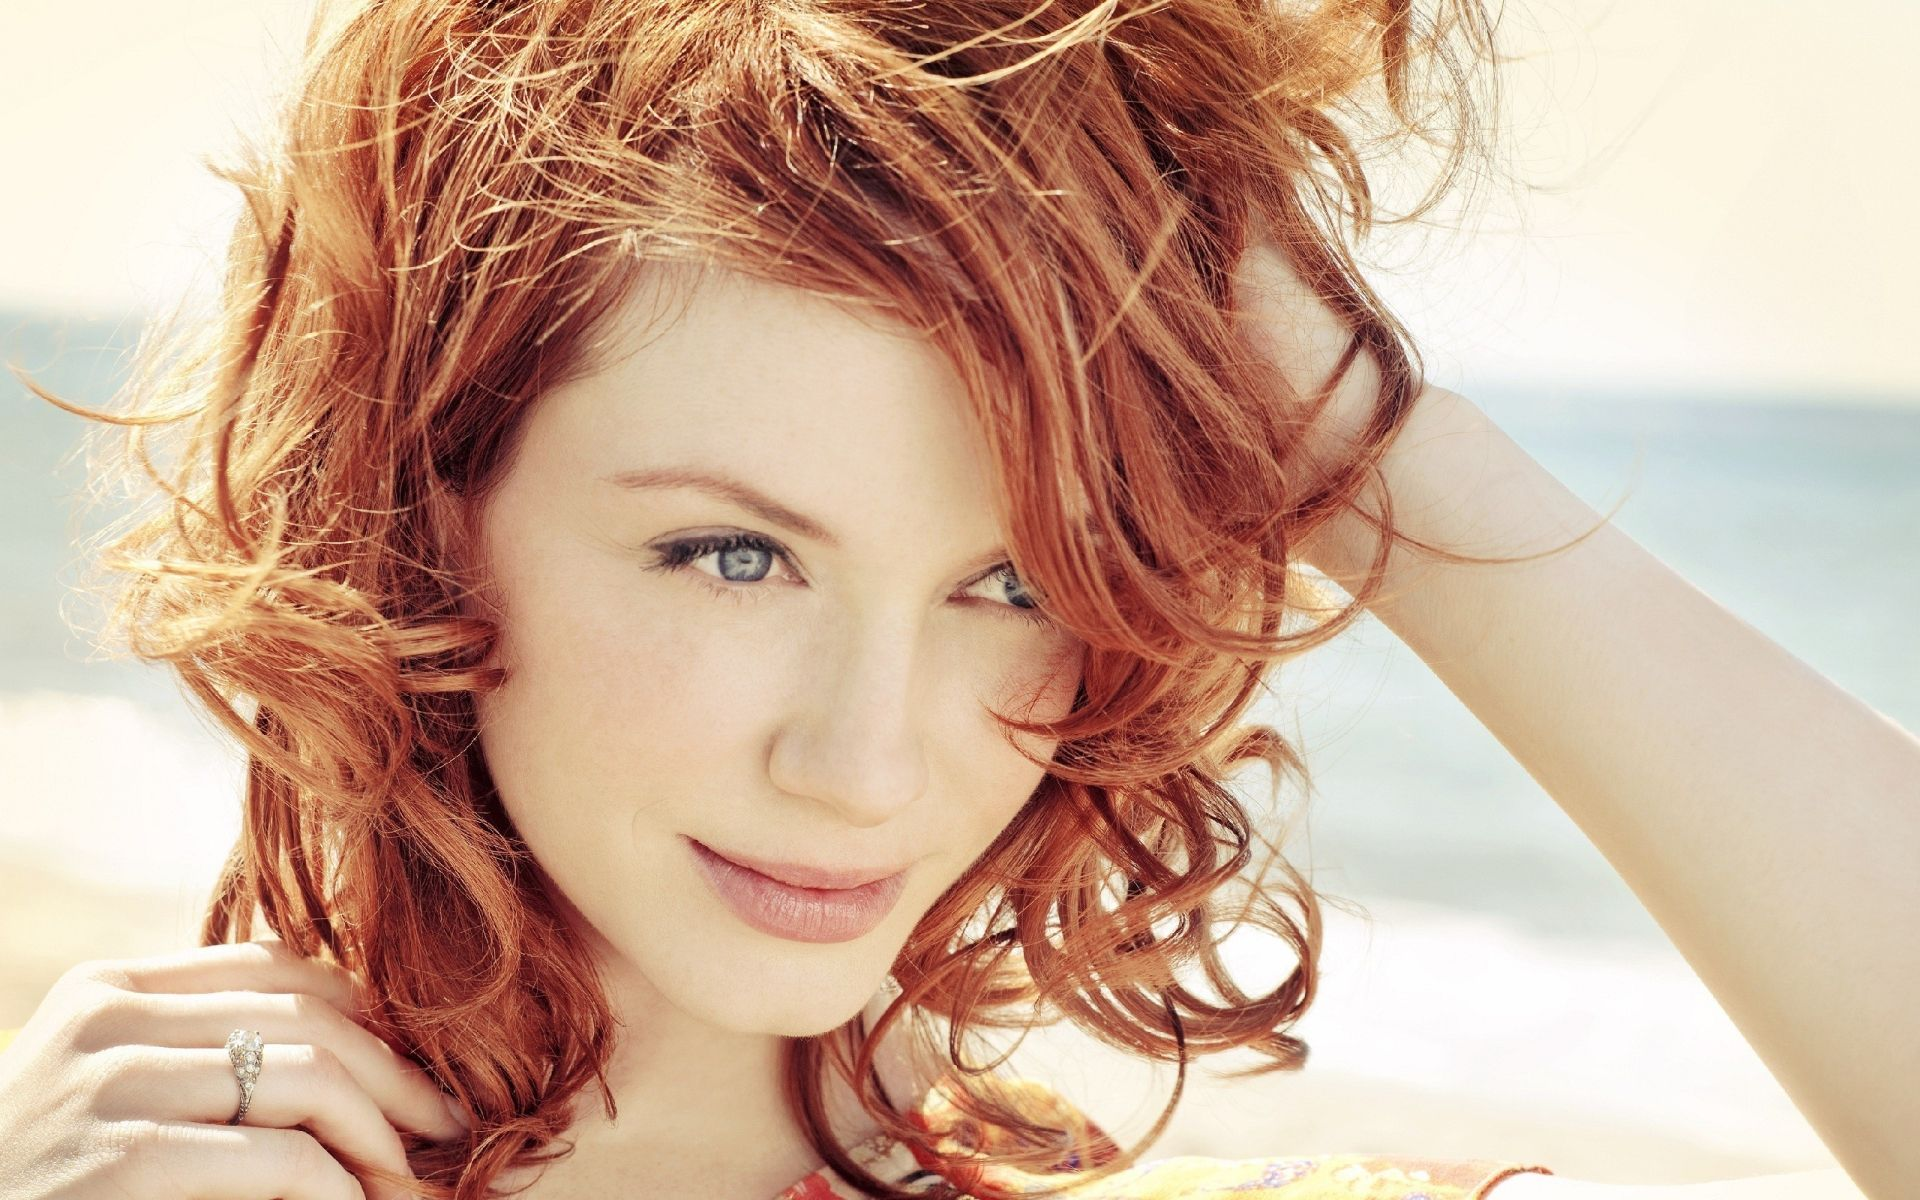 Top 15 Hottest Red Headed Female Celebrities